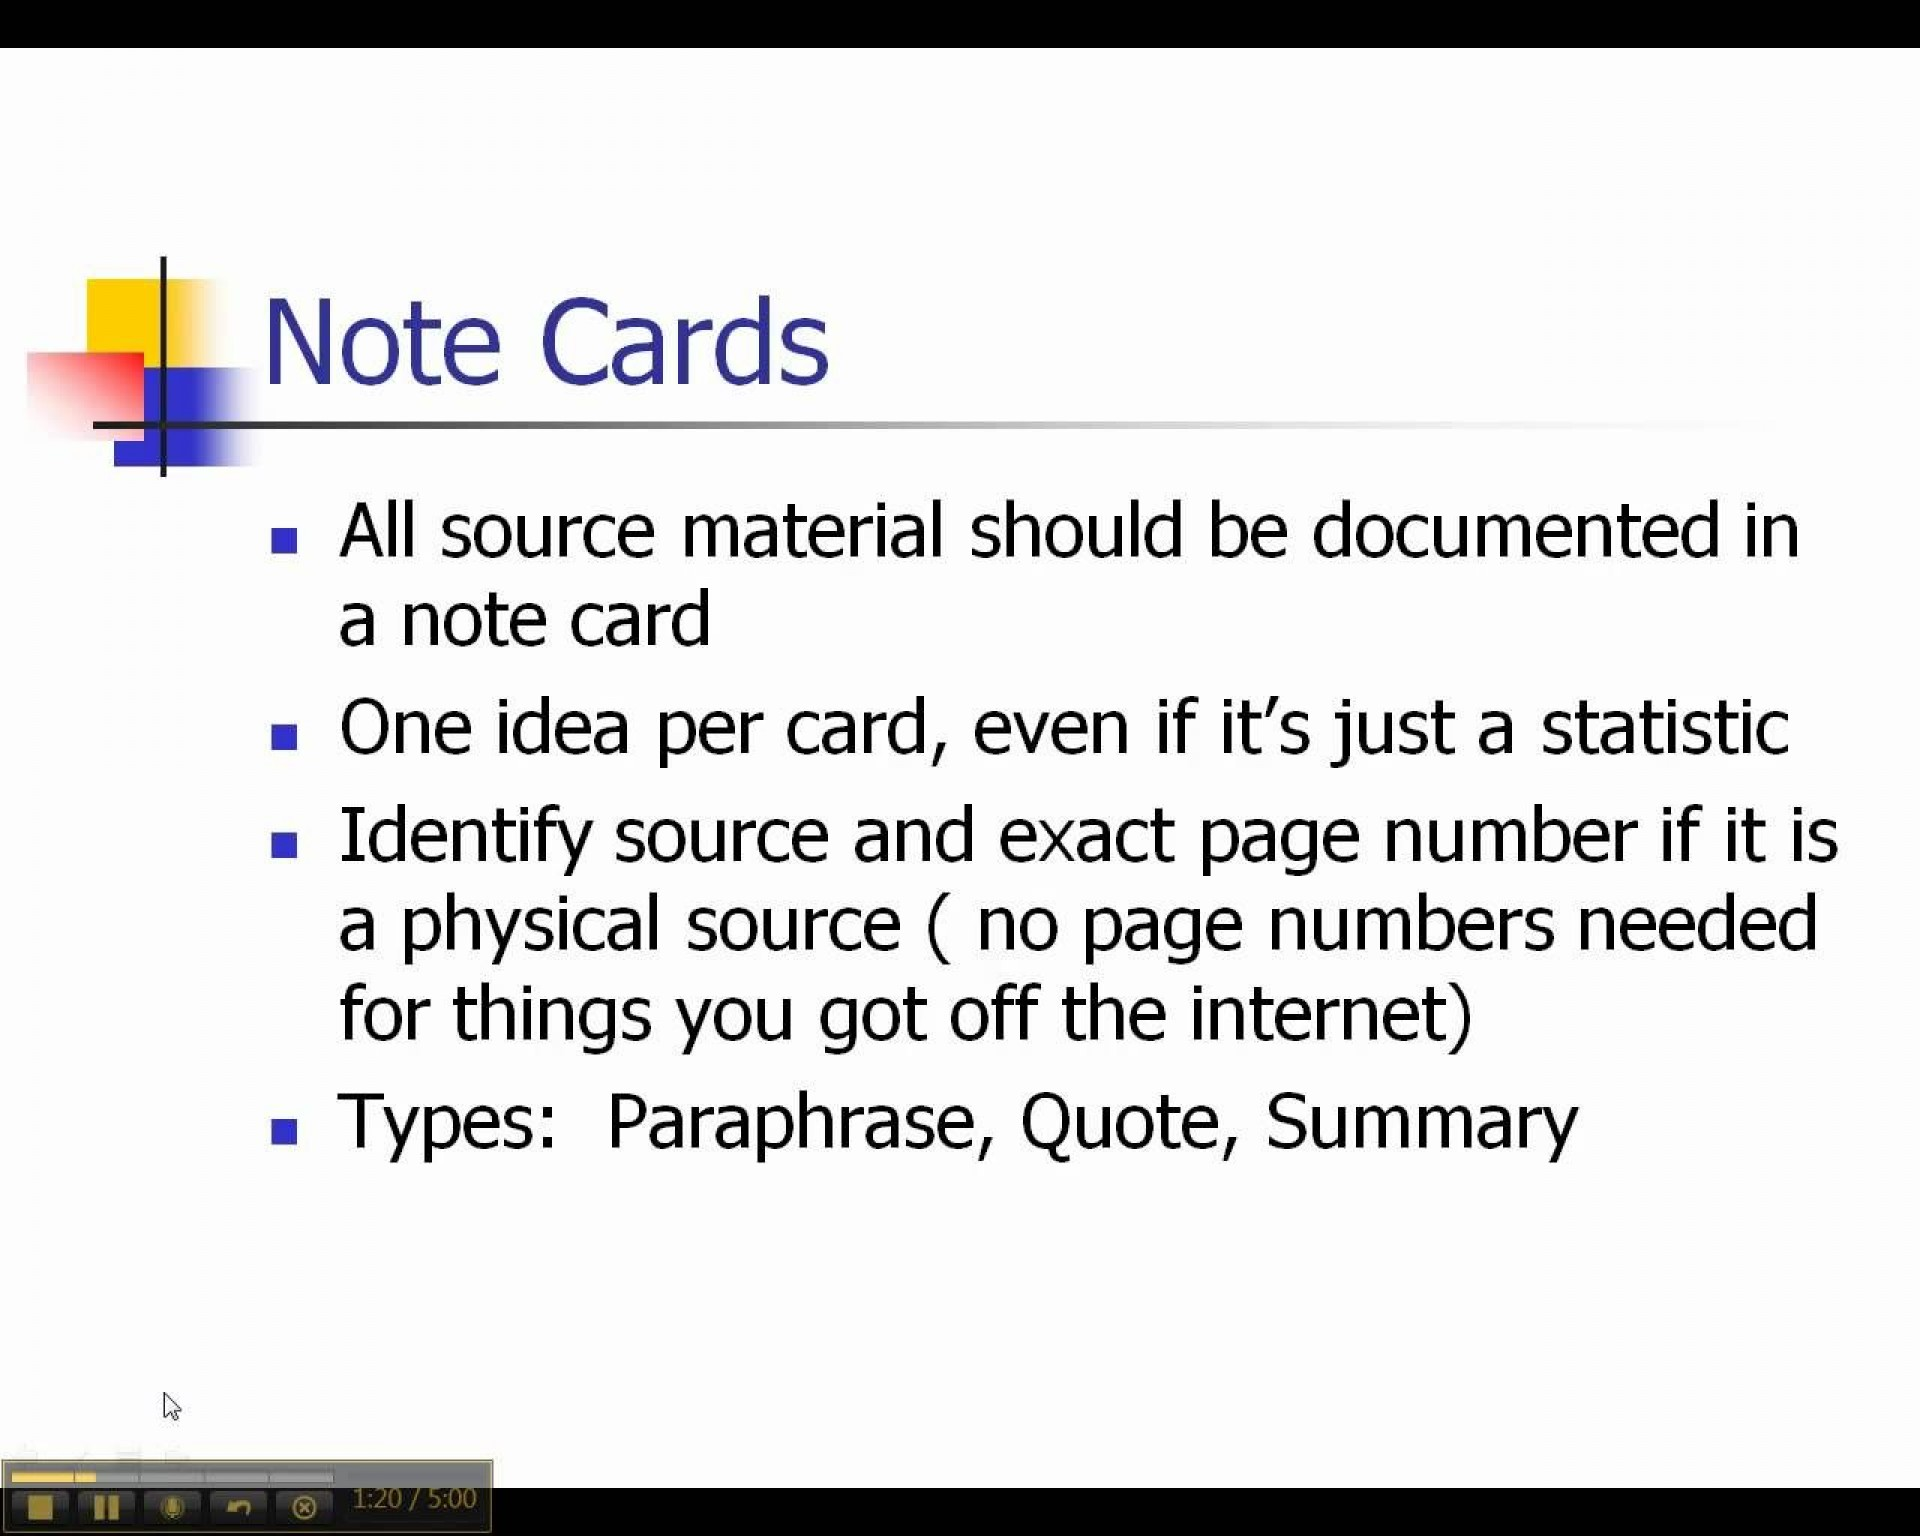 004 Research Paper Notecards For Impressive Papers Sample How To Write Mla 1920